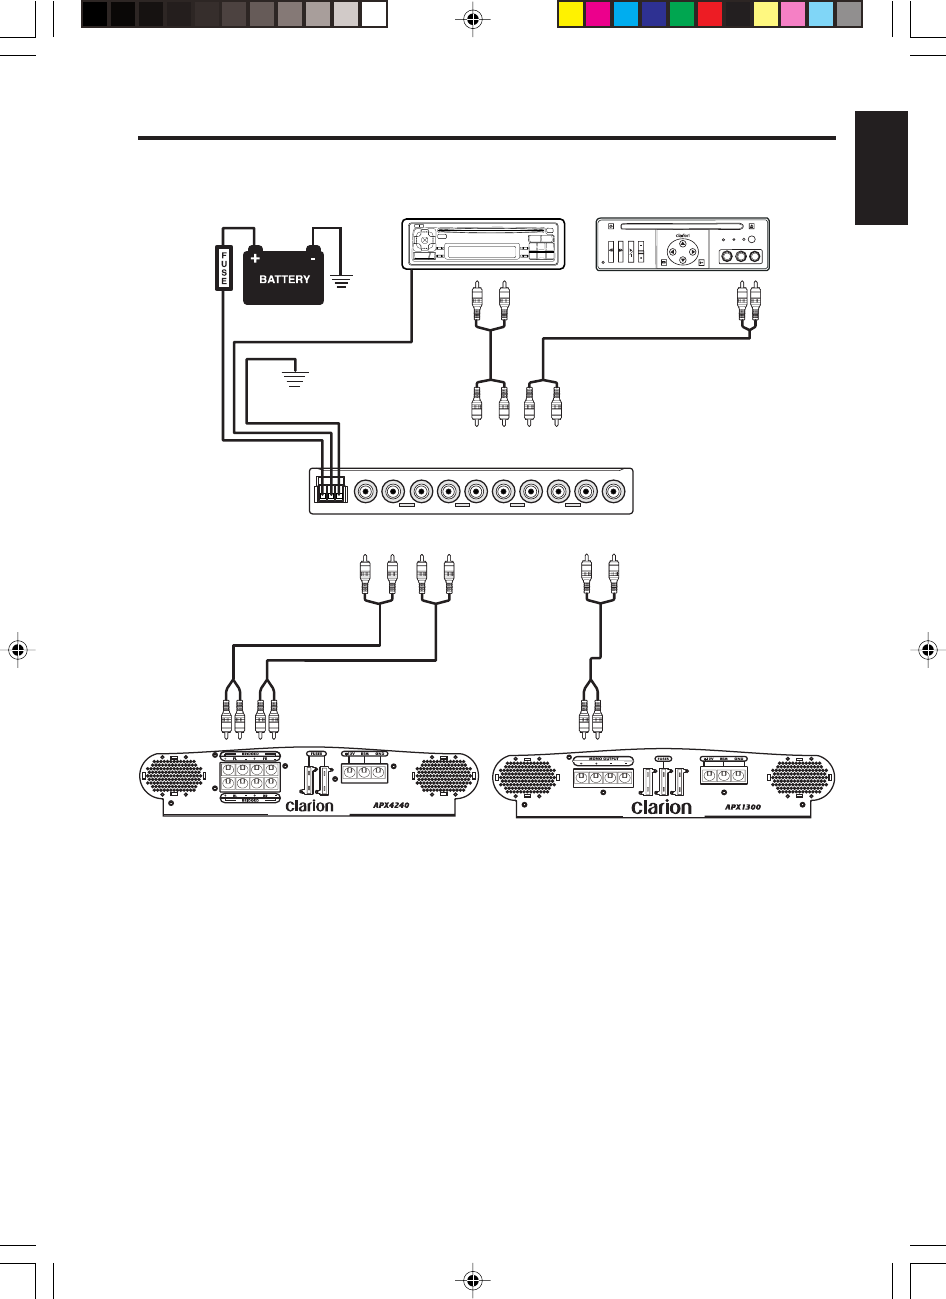 bc1f2d0e 33bf 4e34 095f 10309a34493d bgb diagrams clarion xmd1 wiring diagram clarion xmd1 wiring clarion eqs746 wire harness at gsmx.co